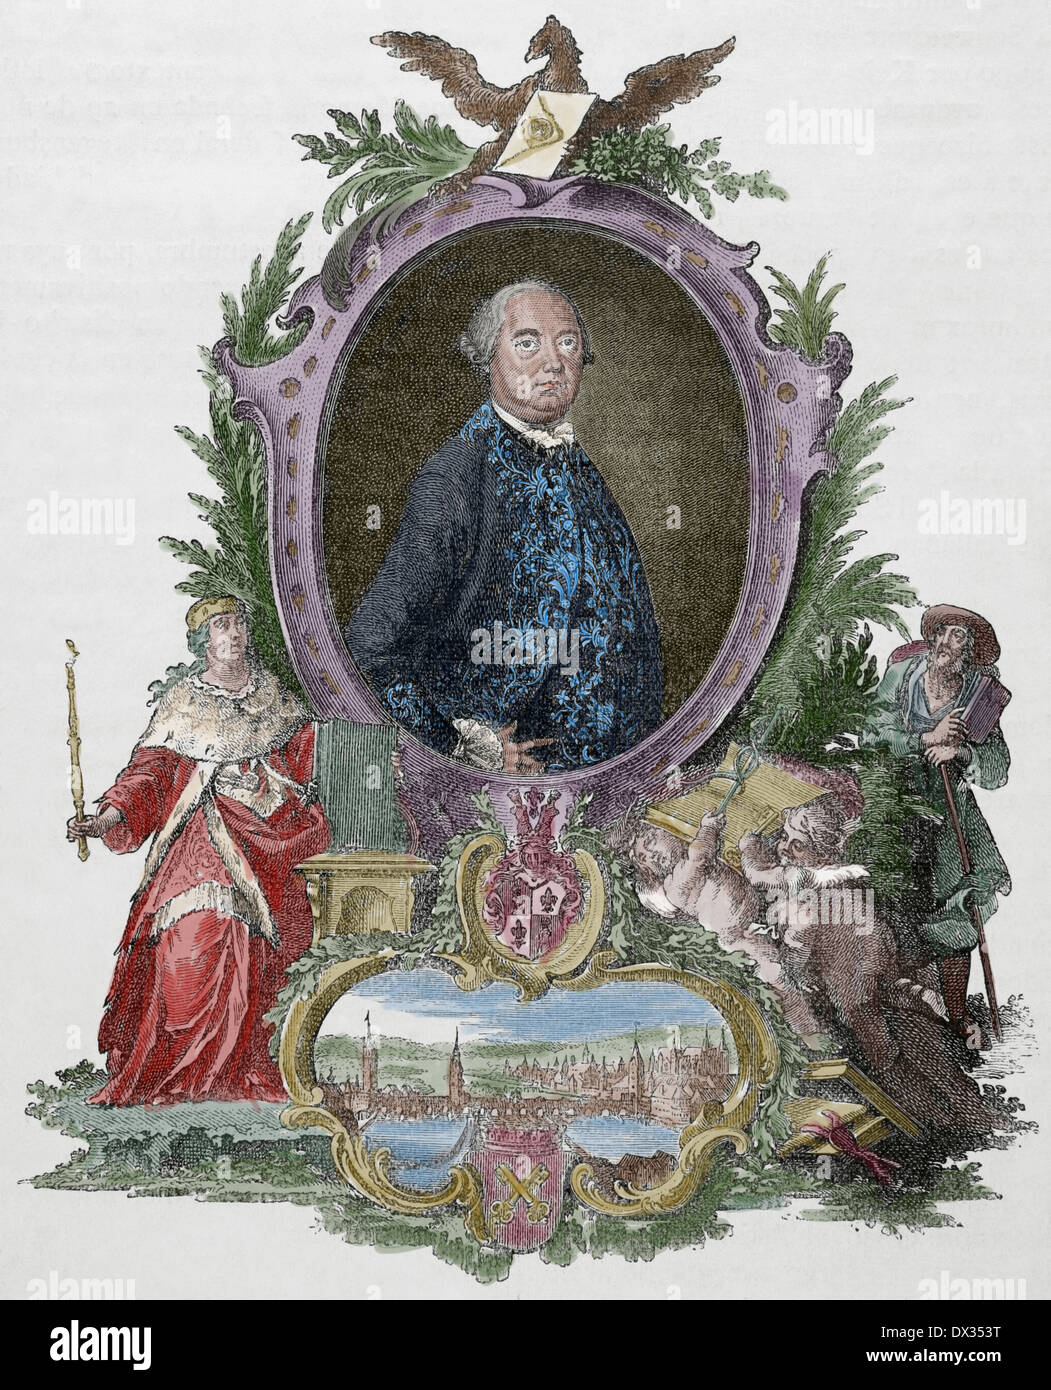 Heinrich Christopher Liber (1707-1788). German political. Engraving Universal History, 1885. Colored. - Stock Image